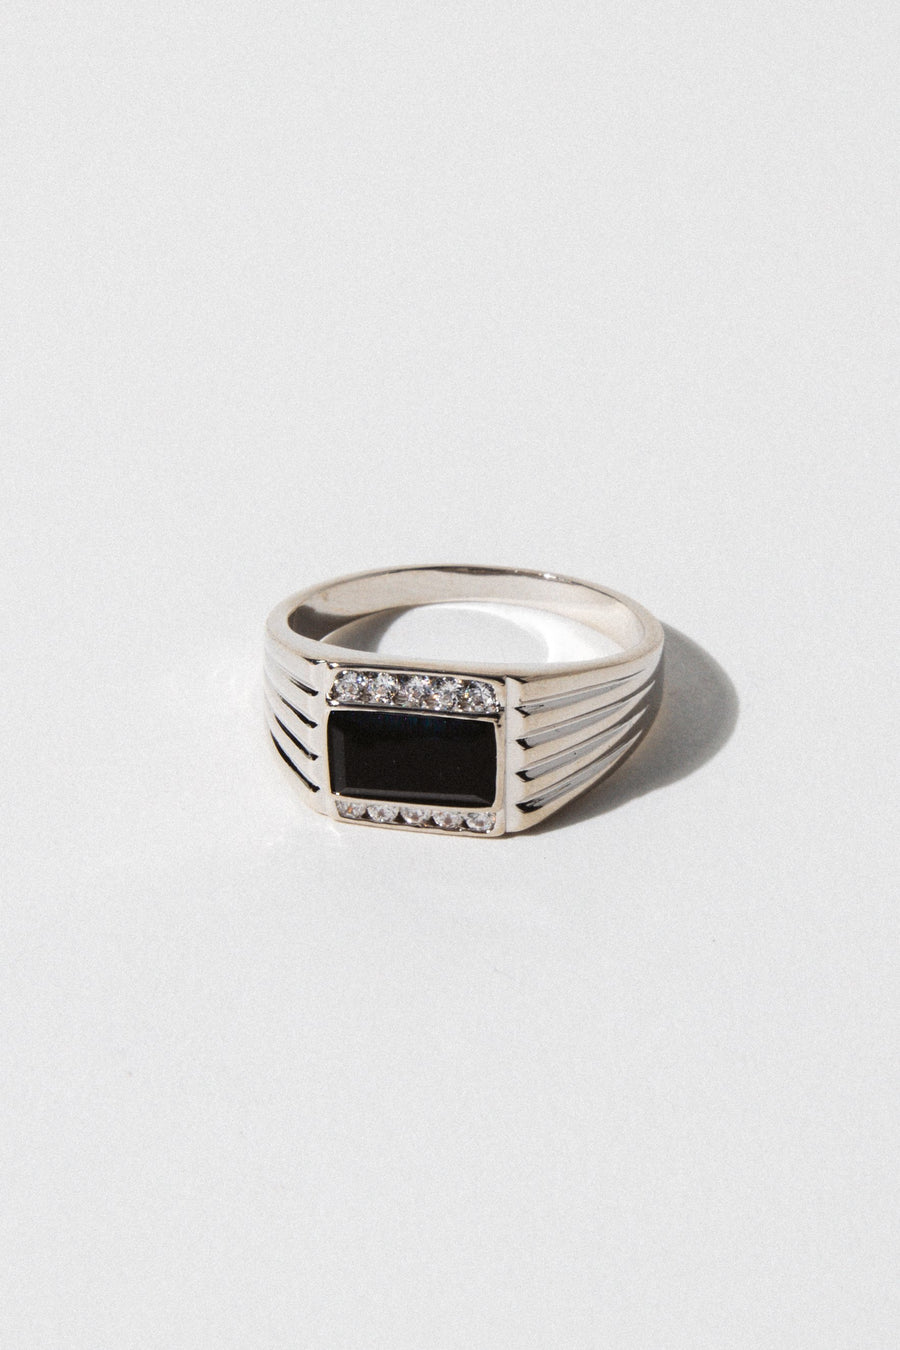 Sparrow Jewelry US 6 / Rhodium Levi Onyx Ring